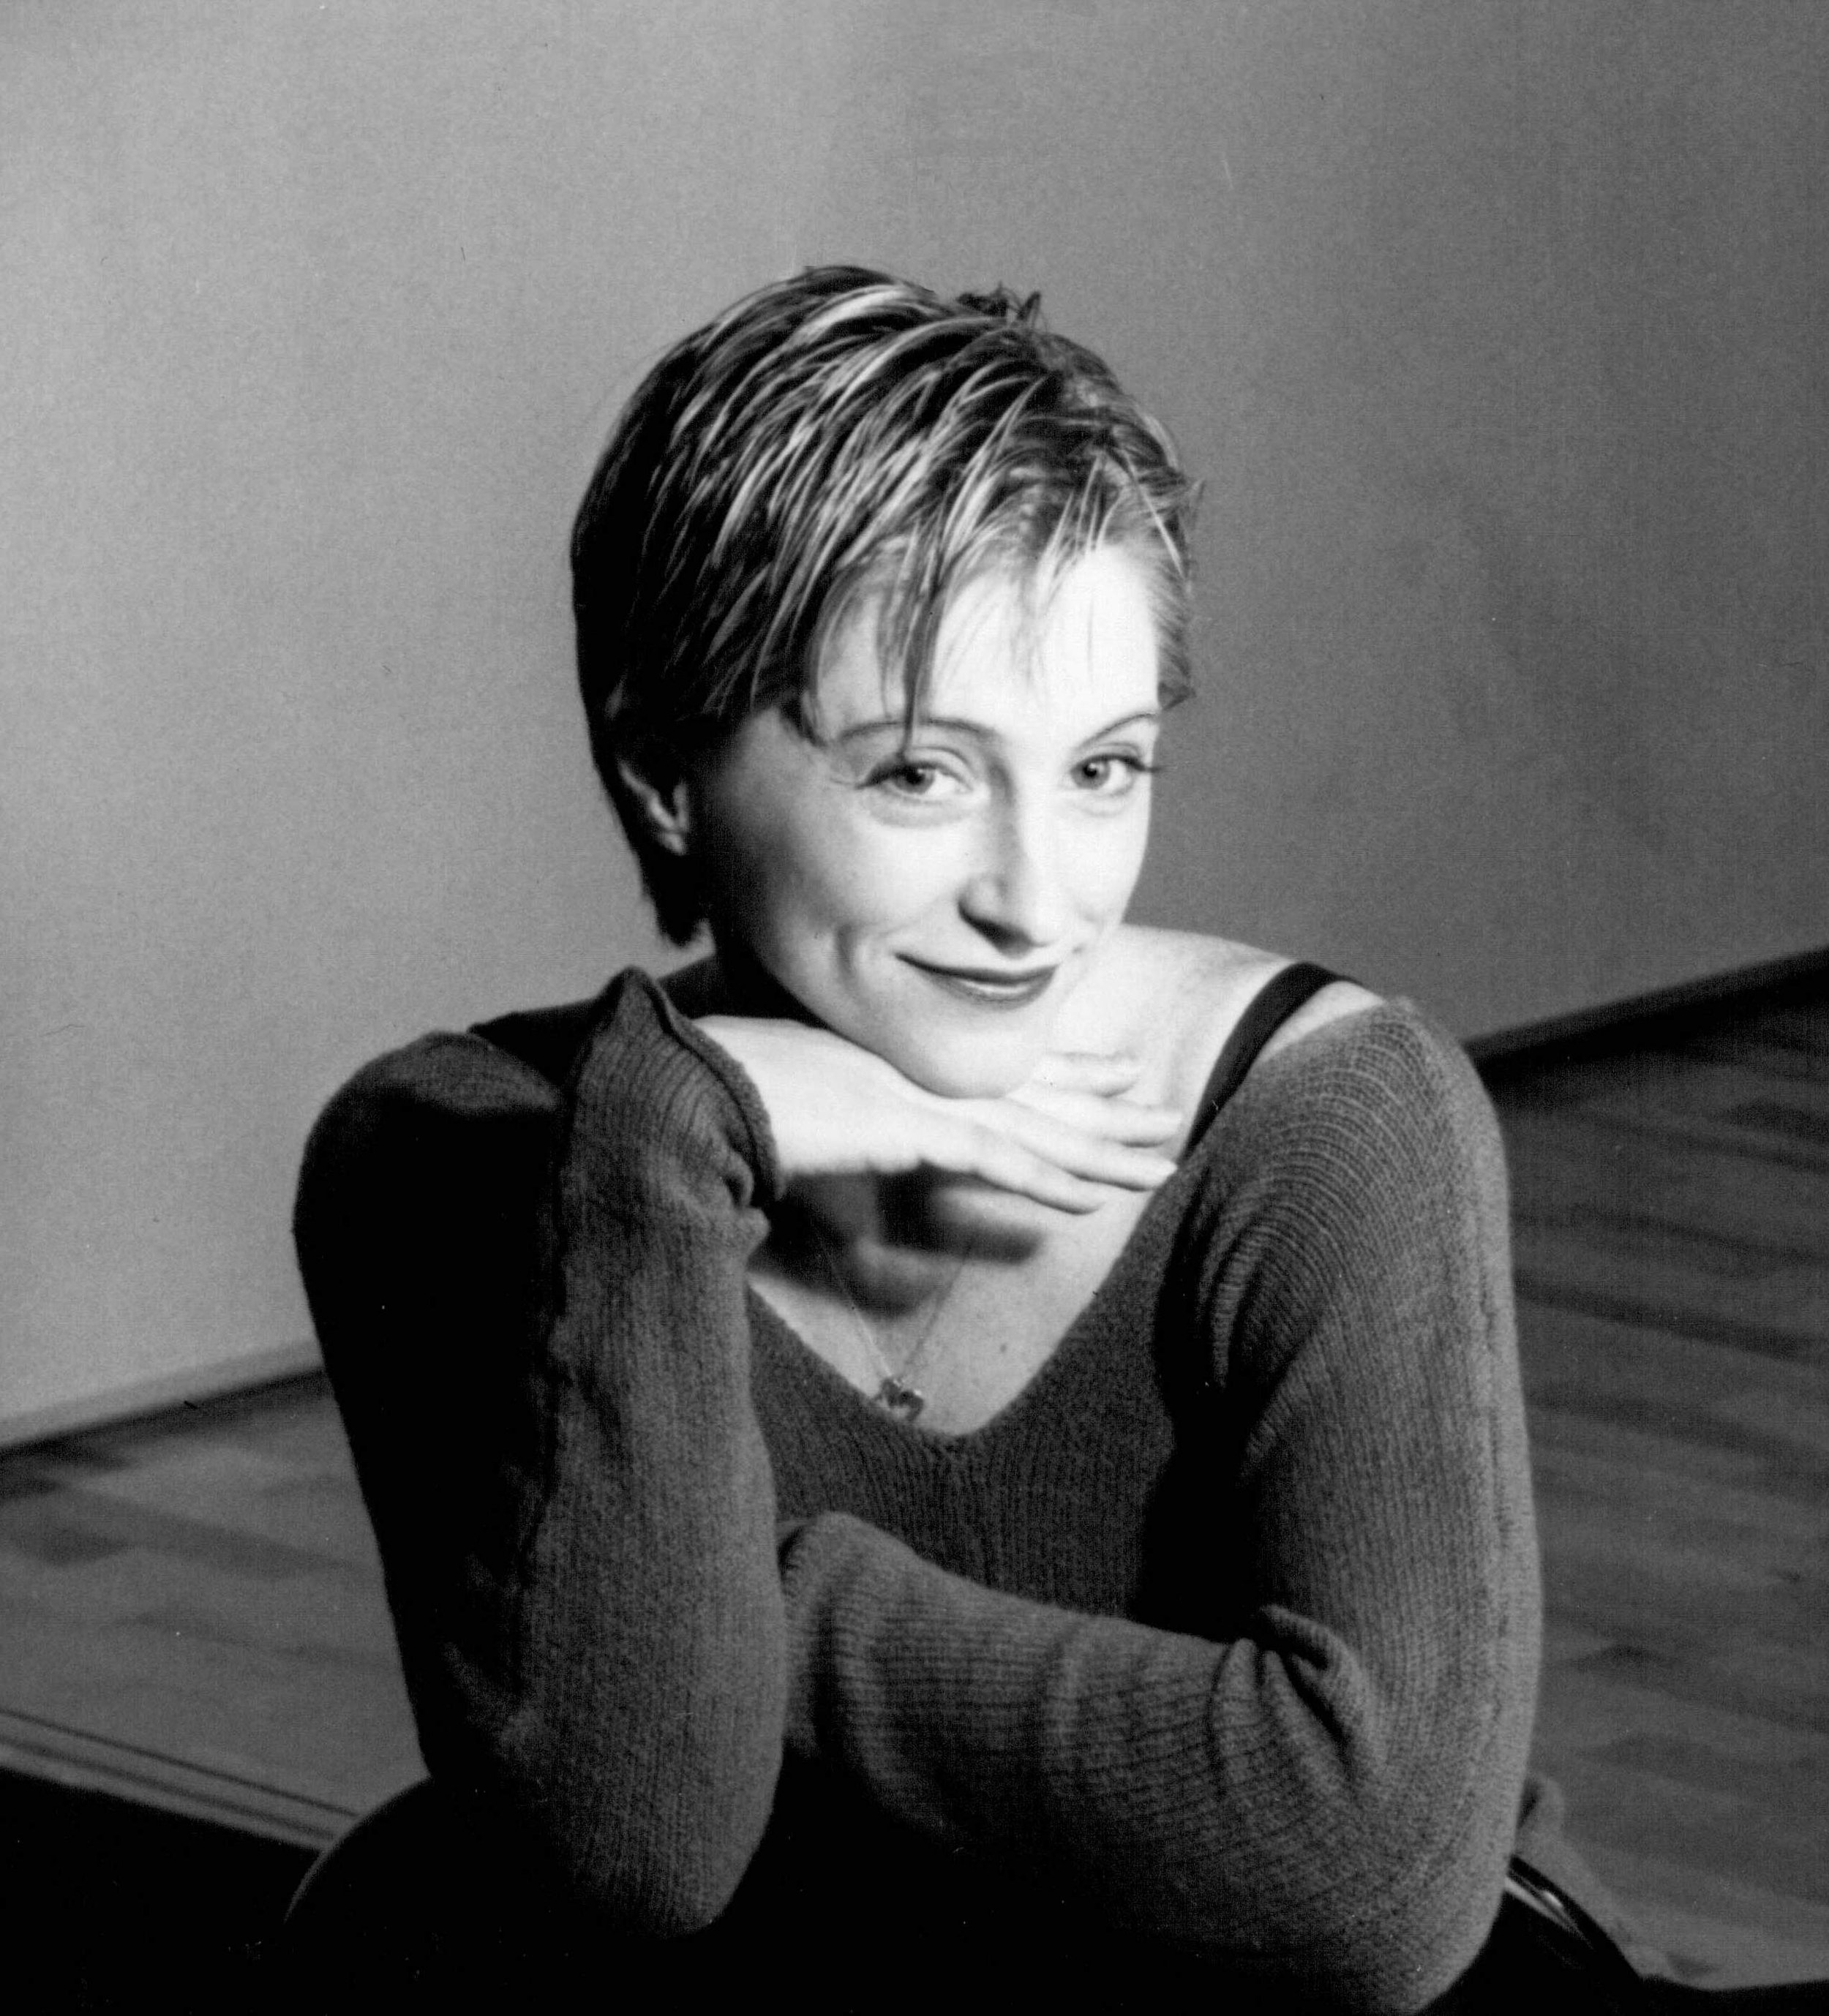 Beth Gulledge-Brown, Founder and Artistic Director   International choreographer, instructor, and dancer Beth Gulledge-Brown began her lifelong relationship with dance at the age of three under the instruction of her mother, Carolyn Gulledge. She holds a degree in dance from the University of Cape Town (UCT) in South Africa. She has performed with companies around the world, including UCT Ballet Company and the CAPAB Ballet Company in South Africa, as well as Delia Stewart Dance Company, Texas Dance Theatre, and Joan Karff's New Dance Group in the United States.  Ms. Gulledge-Brown opened Uptown Dance Centre in 1999, and formed a pre-professional dance company to provide a performing outlet for her advanced students. In 2008, Gulledge-Brown launched Uptown Dance Company, a professional dance company.  A talented and versatile choreographer, Ms. Gulledge-Brown has set choreography for multiple projects and festivals, including the Texas Tanzsommer Festival, Jazz Dance World Congress, Choreographer's X 6, JCC SummerDance Repertory/Performance Project, Dance Houston, and Dance Month. In 2013, Gulledge-Brown choreographed her first opera for the University of Houston Moore's School of Music's production of Shoshtakovich's  Moscow Cheryomushki . Her choreography has been presented internationally in Mexico, Costa Rica, Austria, and China.